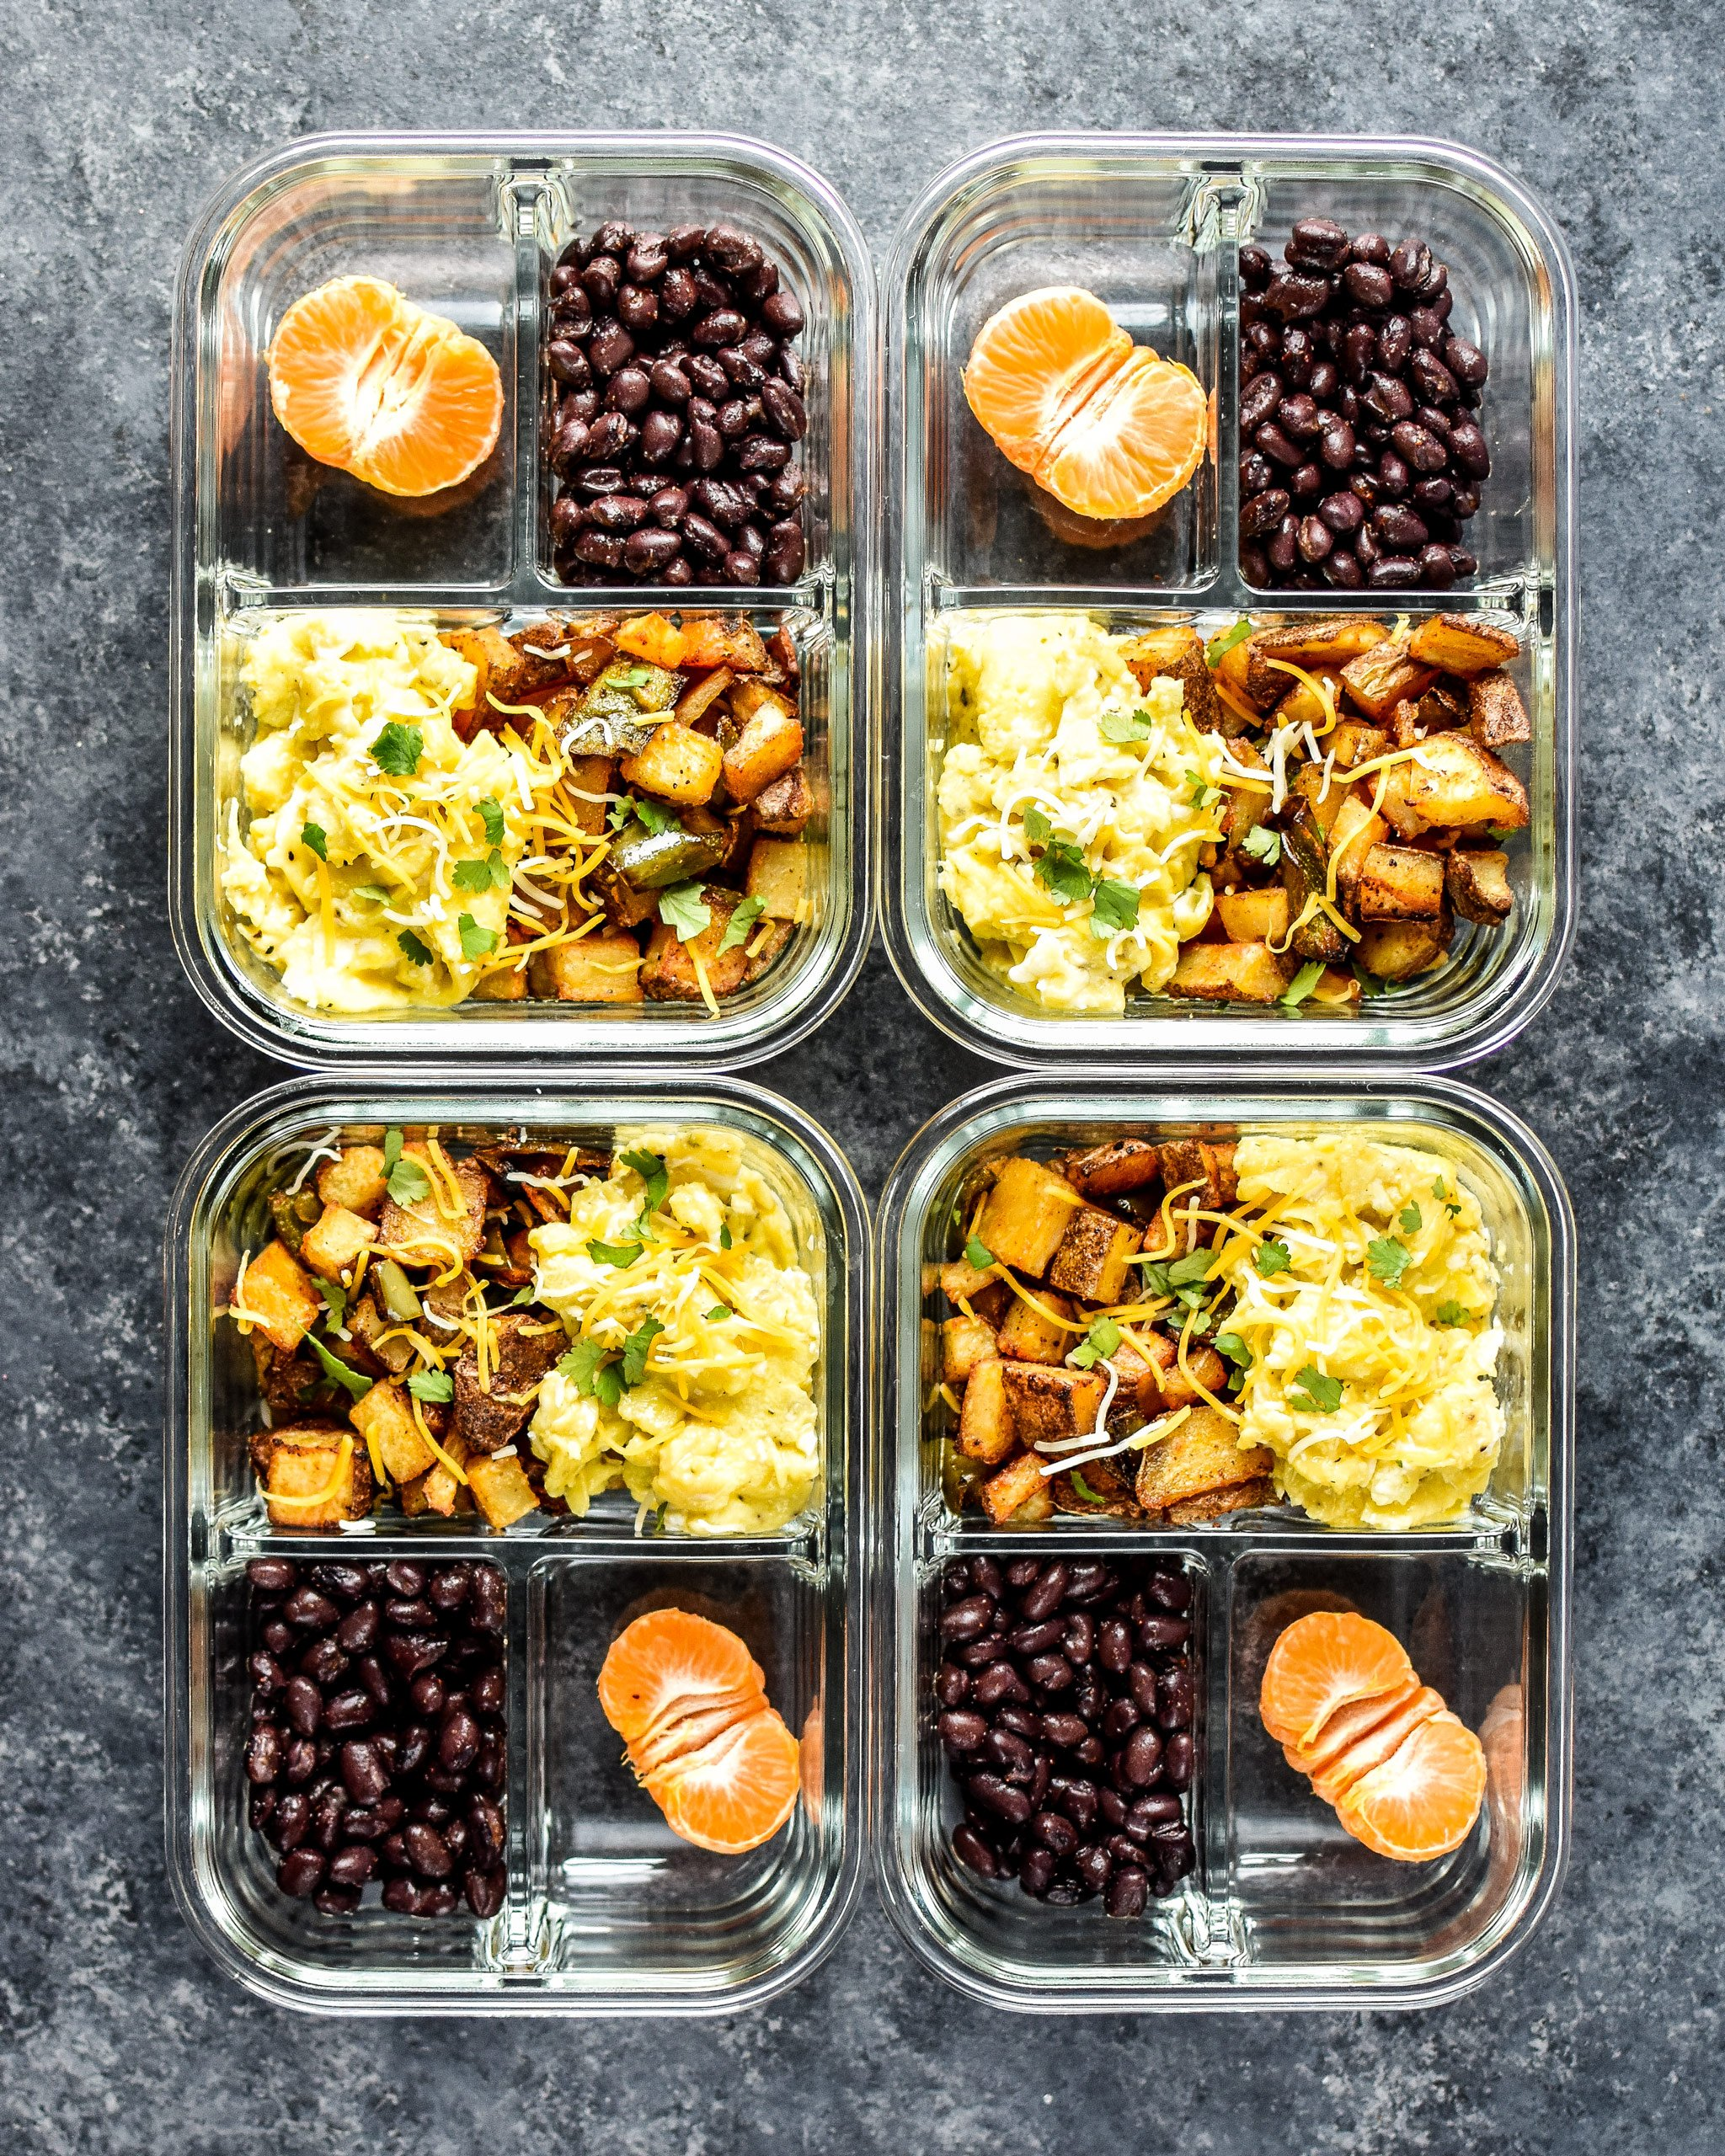 Four meal prepped servings of breakfasts with potatoes, eggs, peppers and beans.